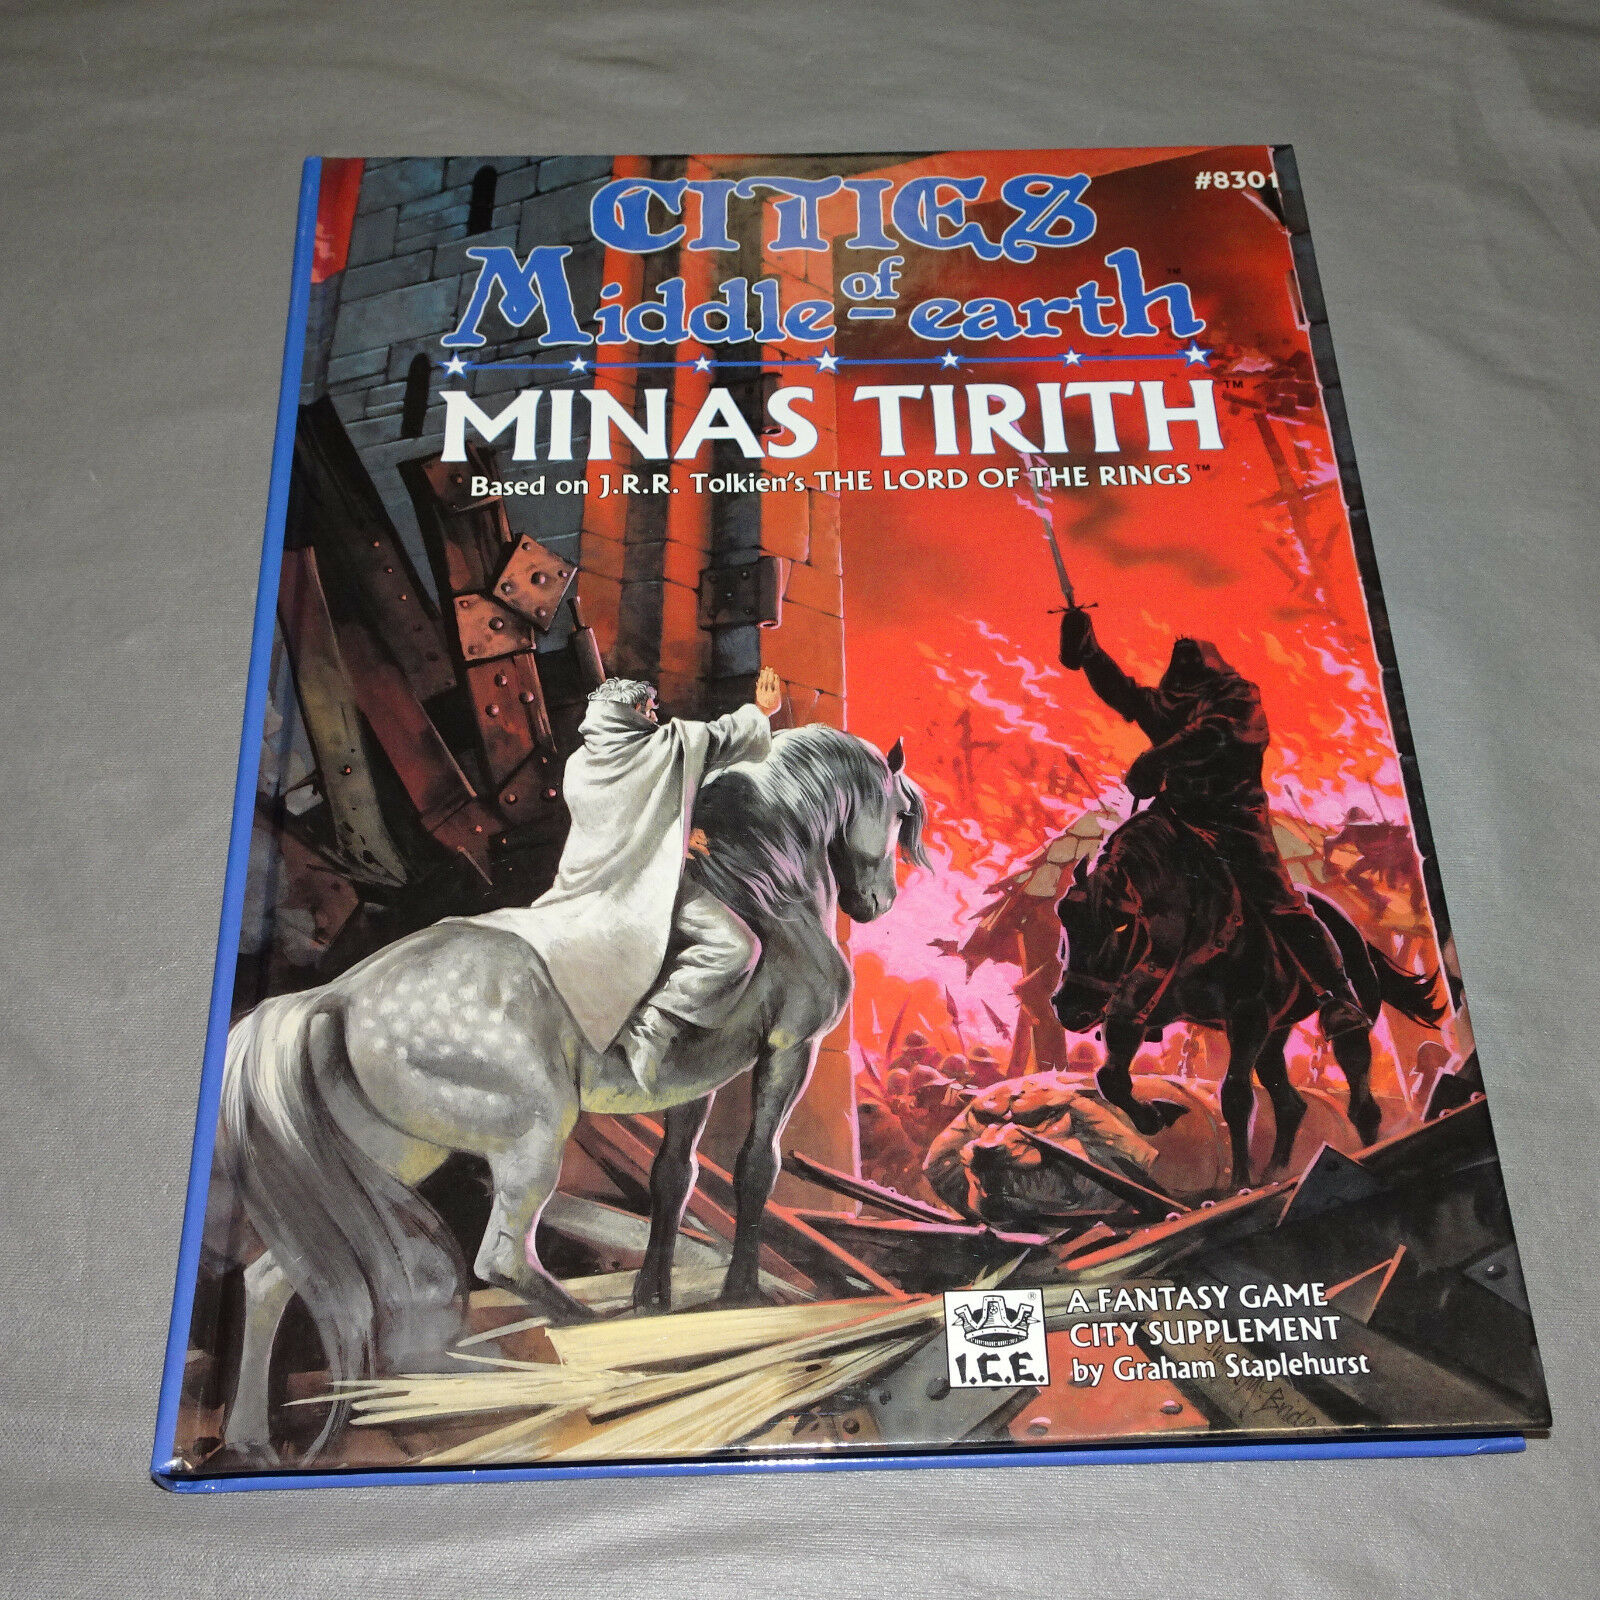 Cities of Middle -Ekonsth MINAS TIRITH 8301 I.C.E. merp - 1988 Hardcover